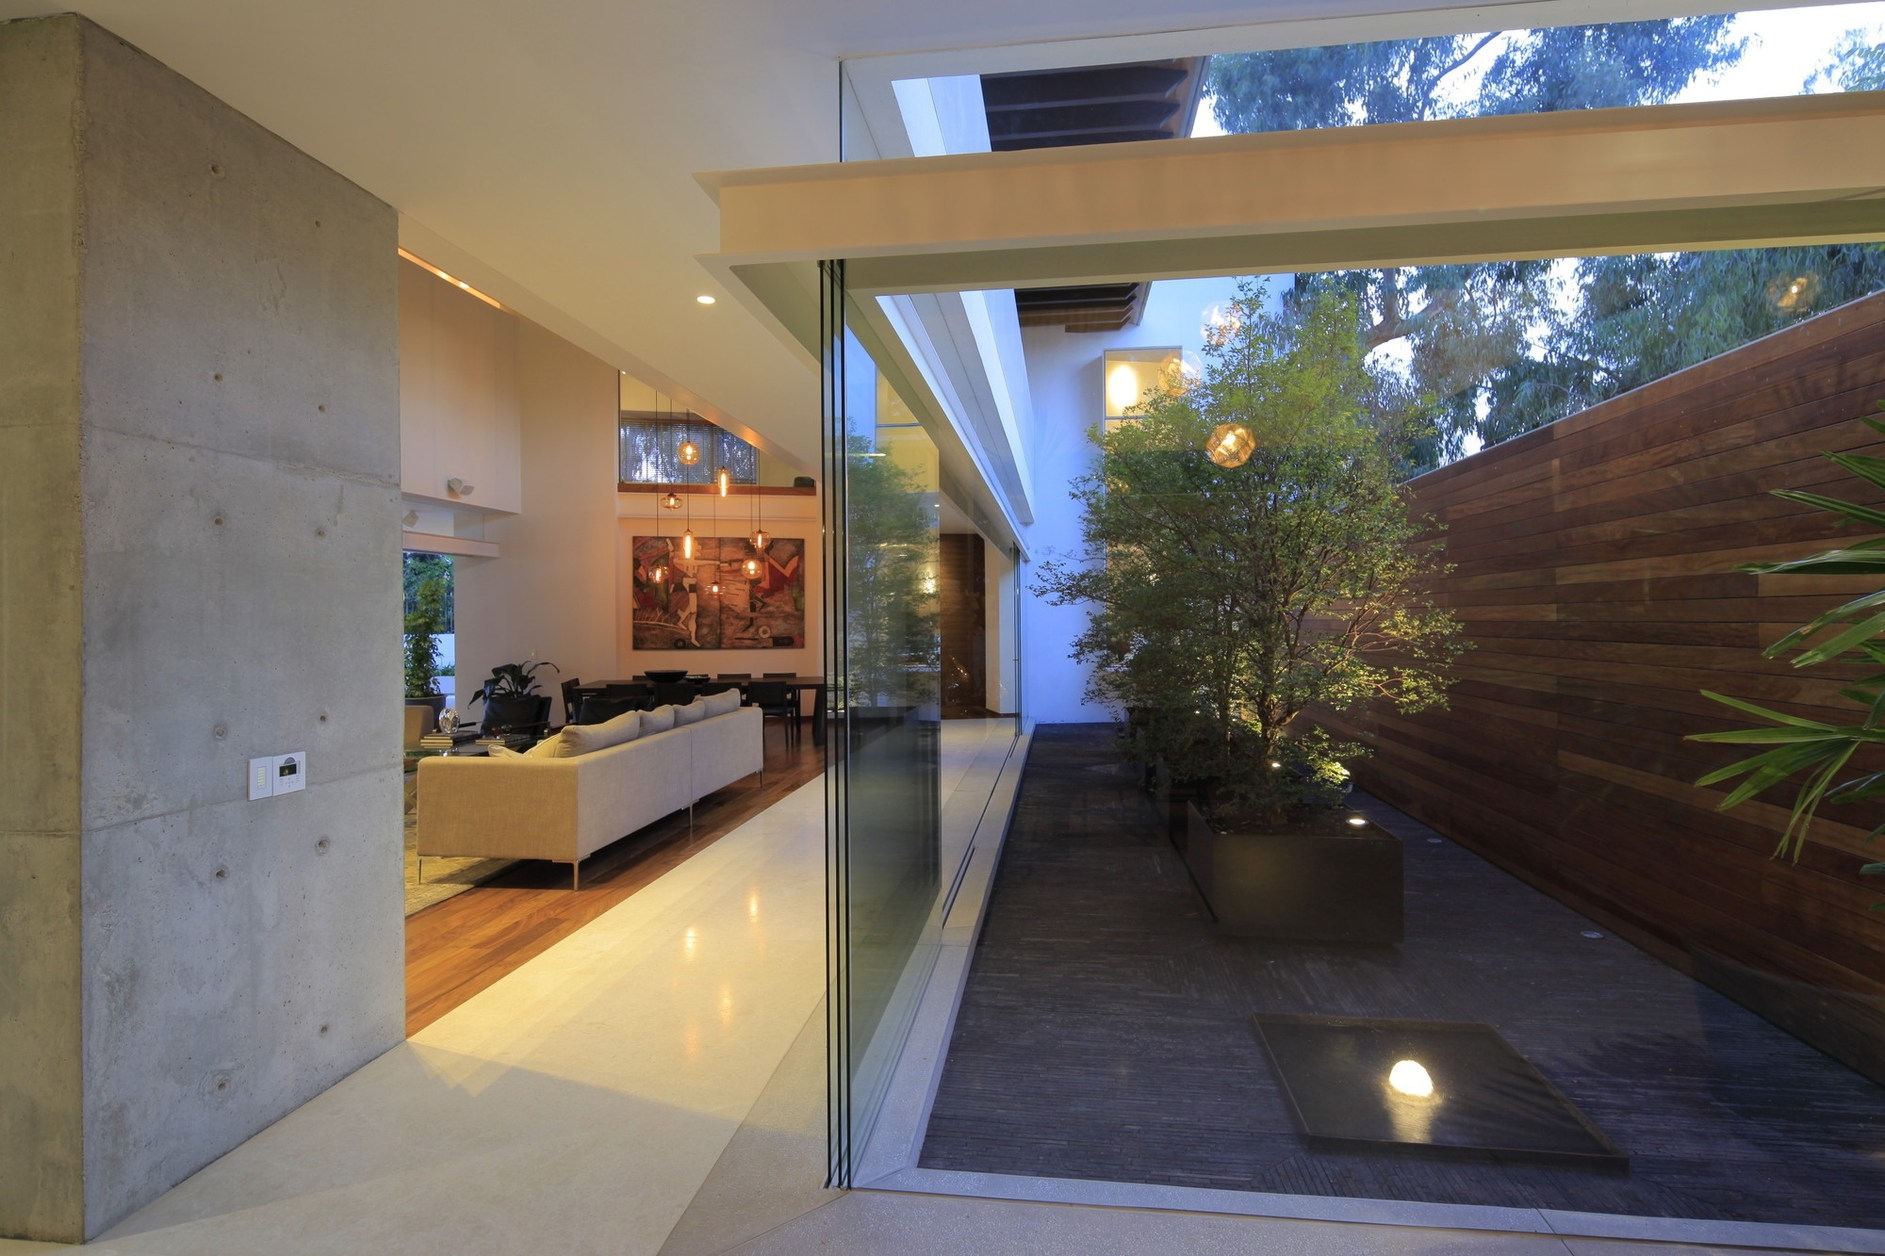 Modern house plans with interior courtyard modern house - Interior courtyard houses ...